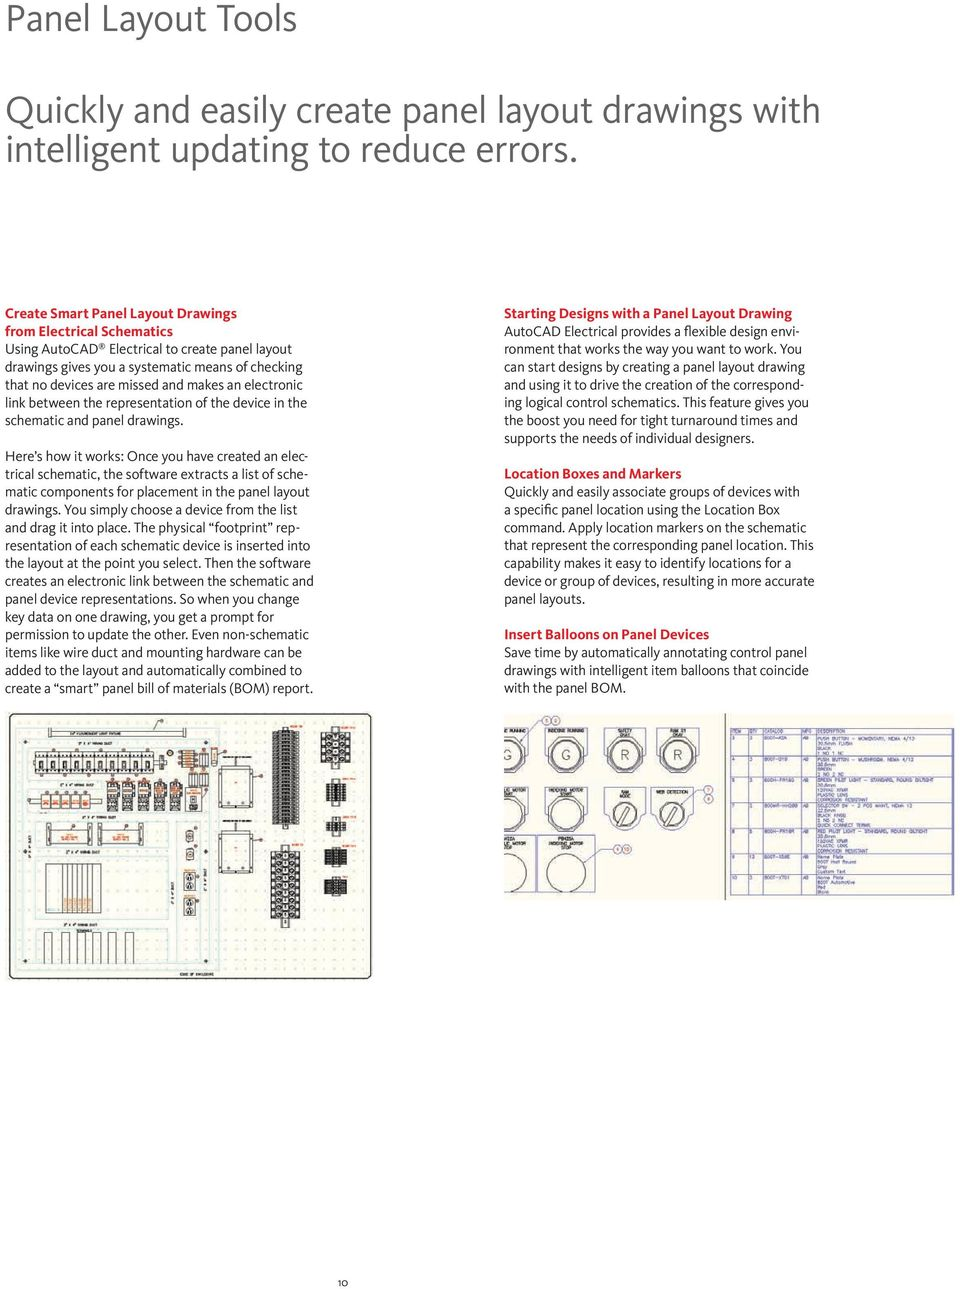 Get Wired Autocad Electrical Pdf Hvac Drawing Mep 2008 Electronic Link Between The Representation Of Device In Schematic And Panel Drawings